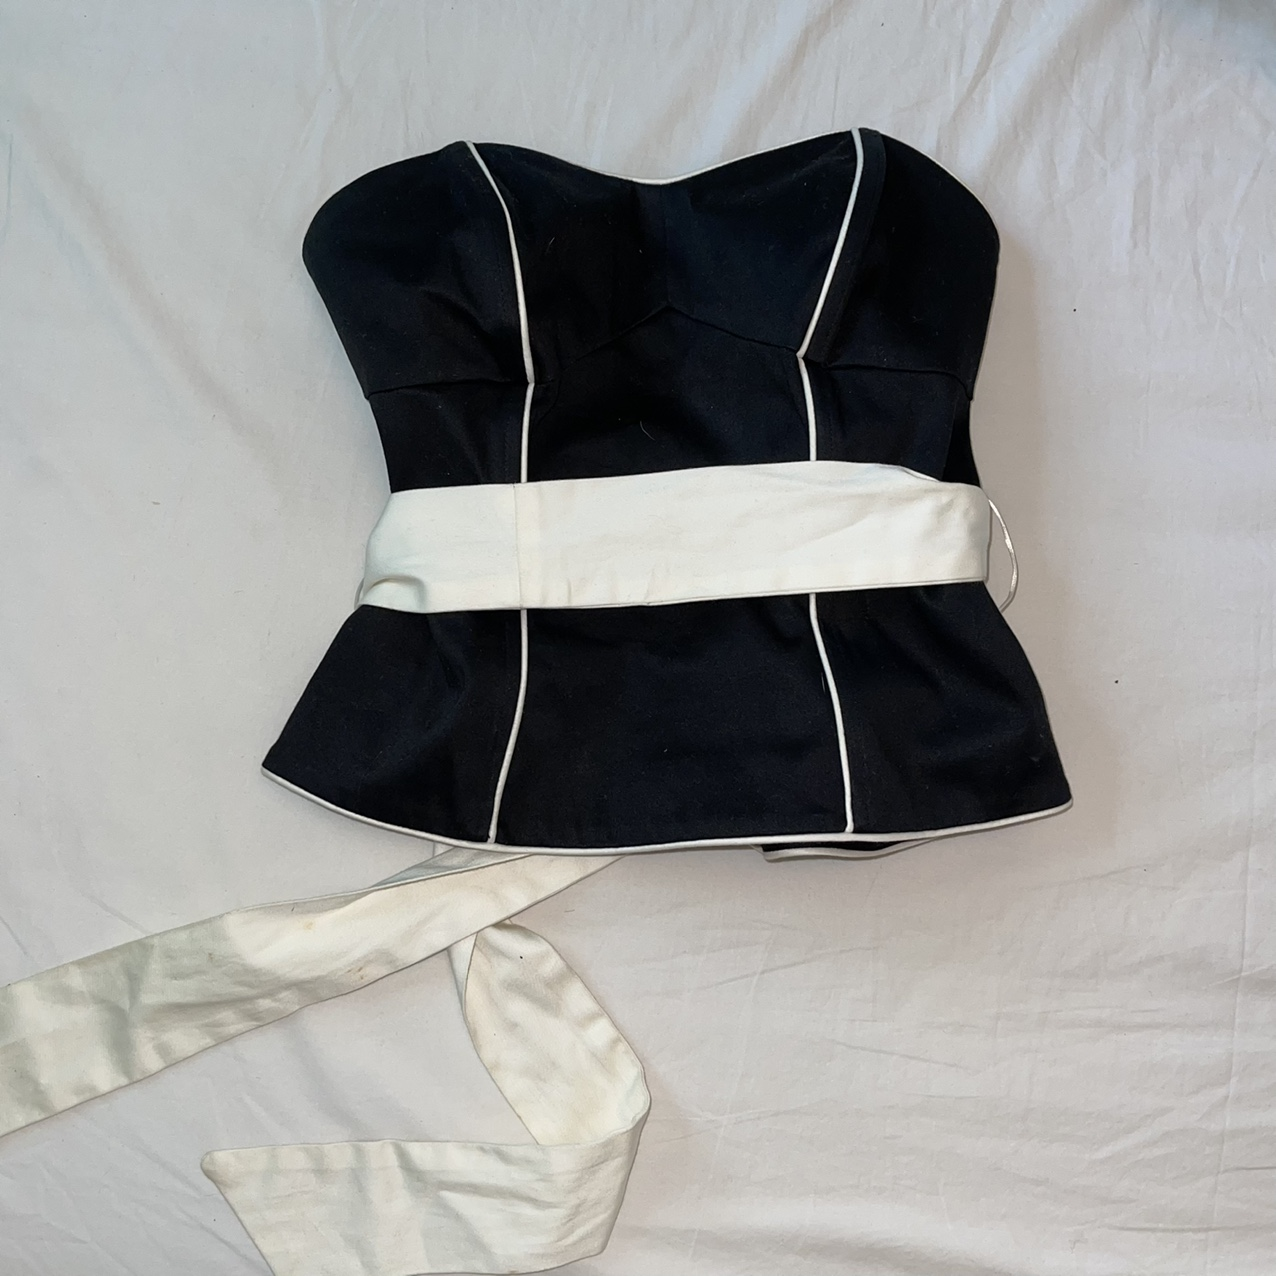 Product Image 1 - Black corset top with white